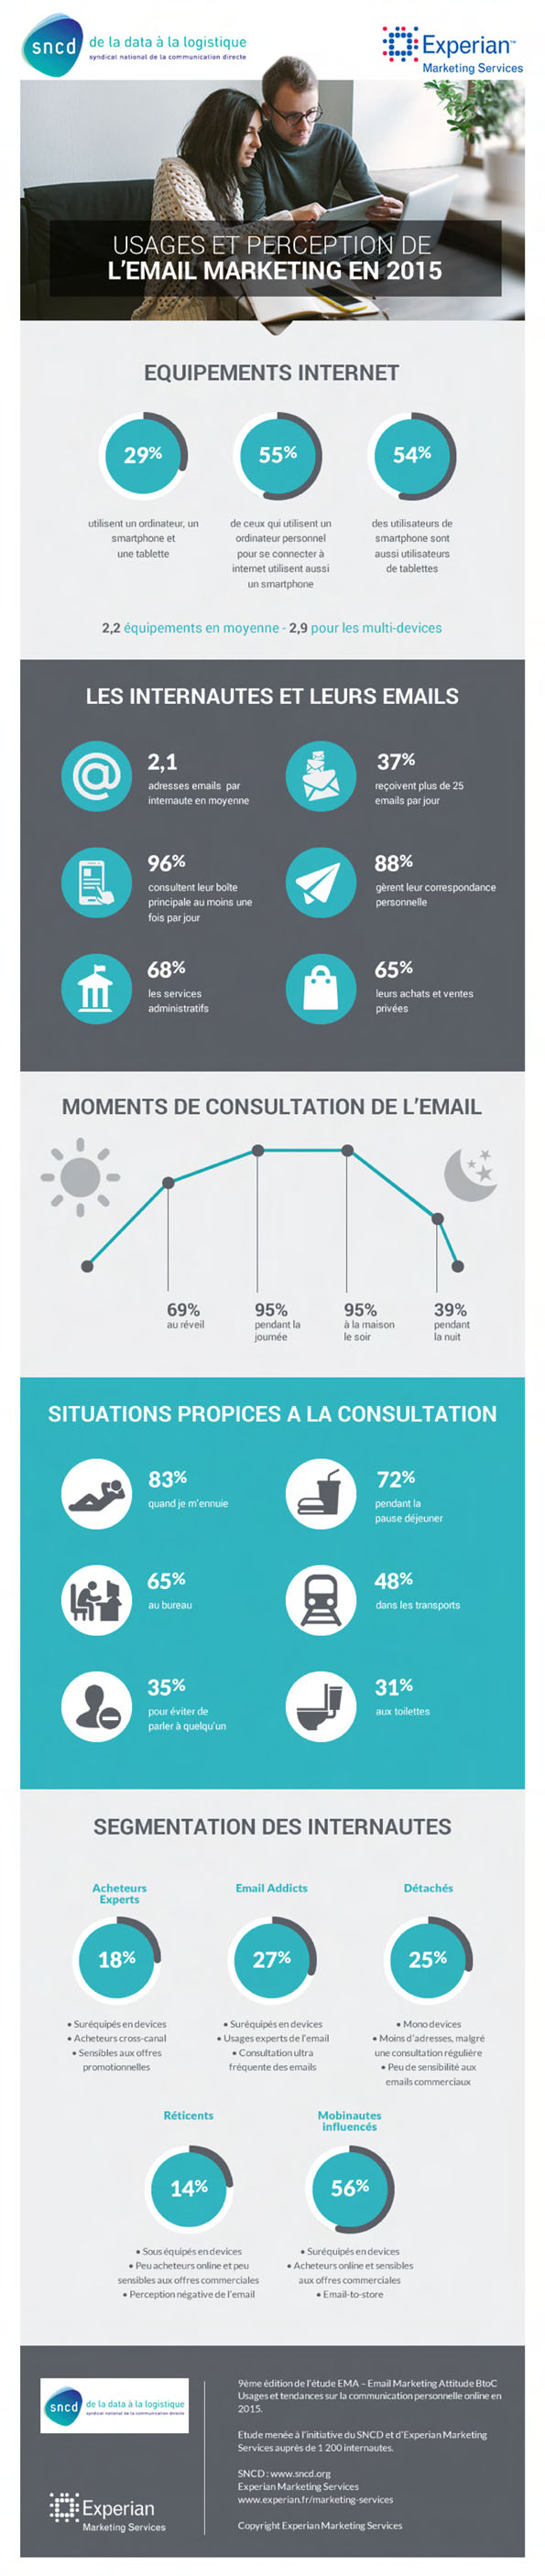 Infographie Emailing BtoC